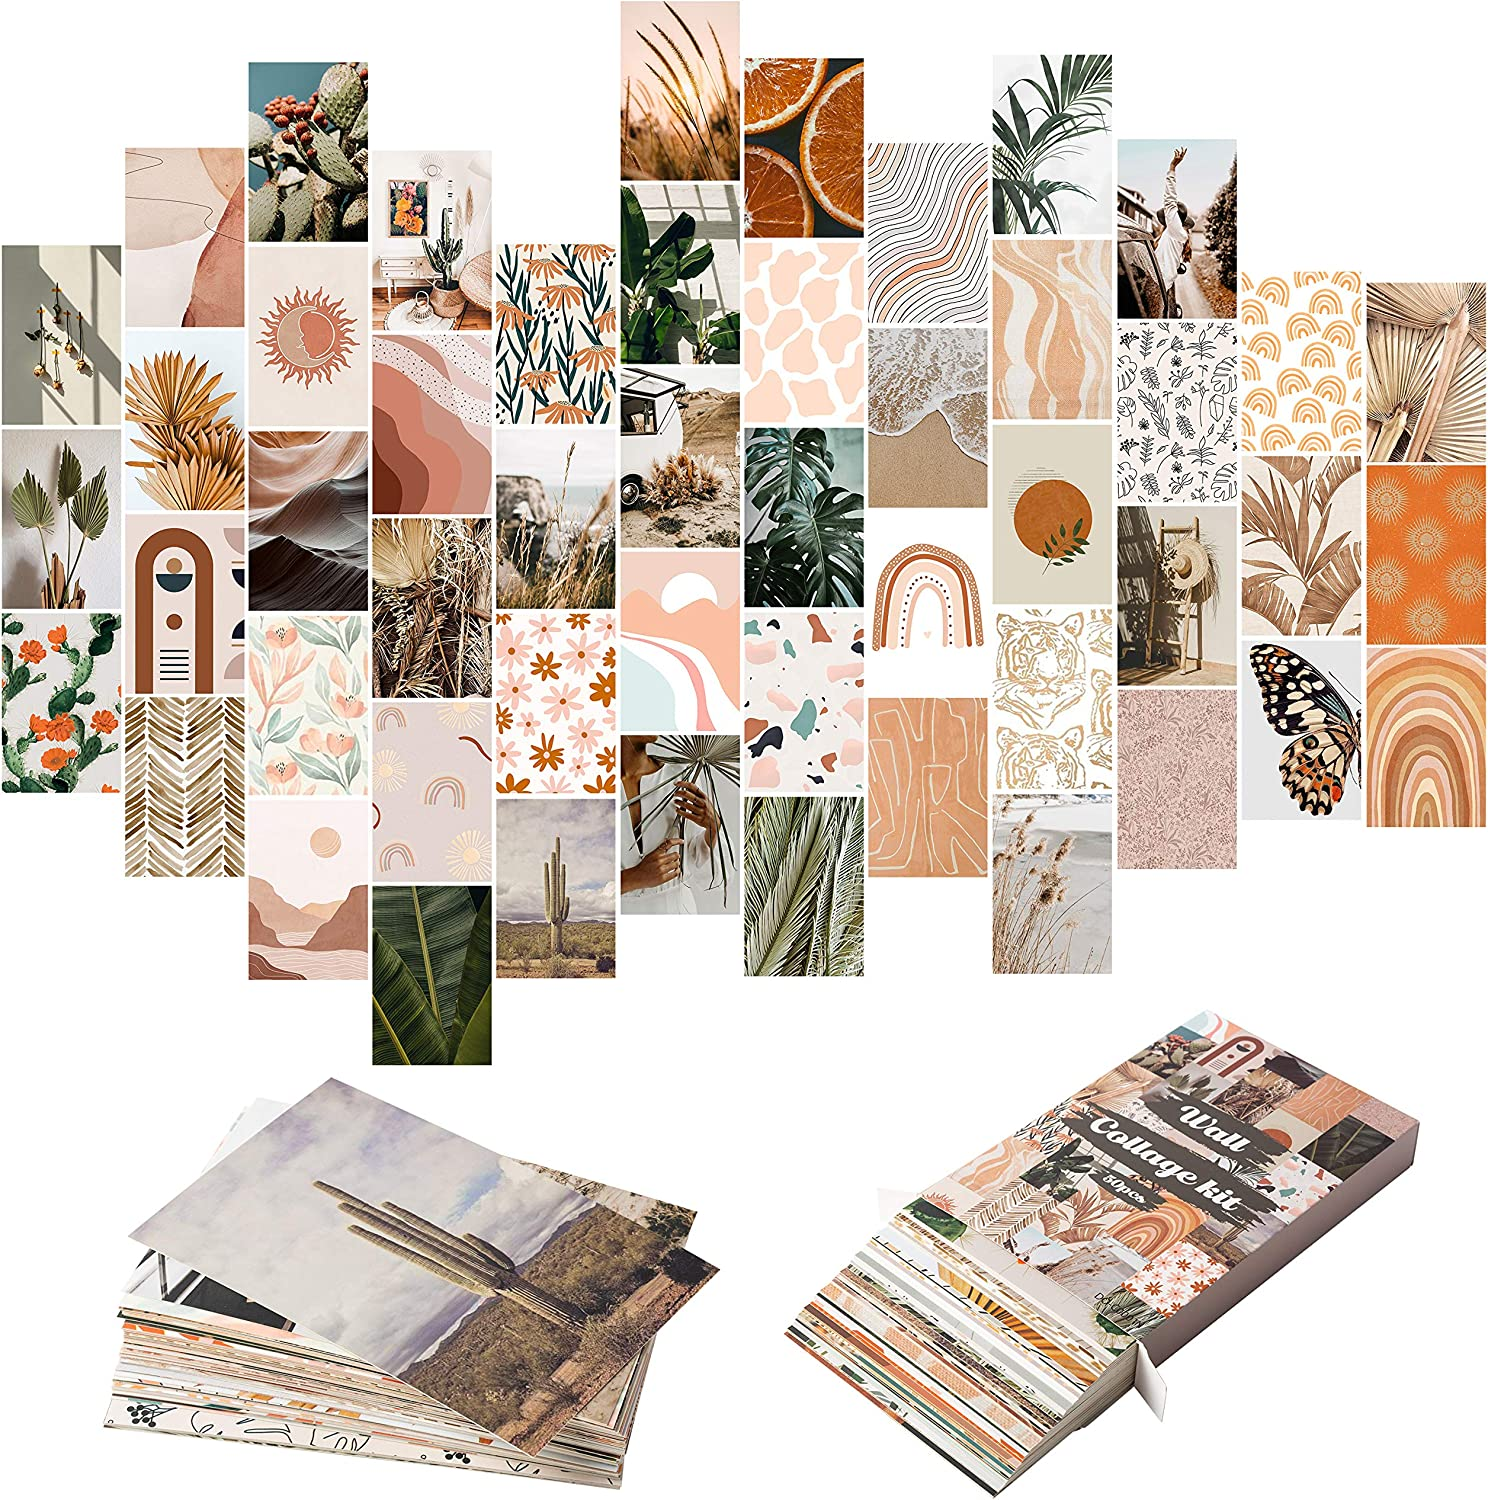 YINGENIVA 50PCS Boho Aesthetic Pictures Wall Collage Kit, Peach Teal Photo Collection Collage Dorm Decor for Girl Teens and Women, Orange Boho Wall Prints Kit, Small Posters for Room Bedroom Aesthetic